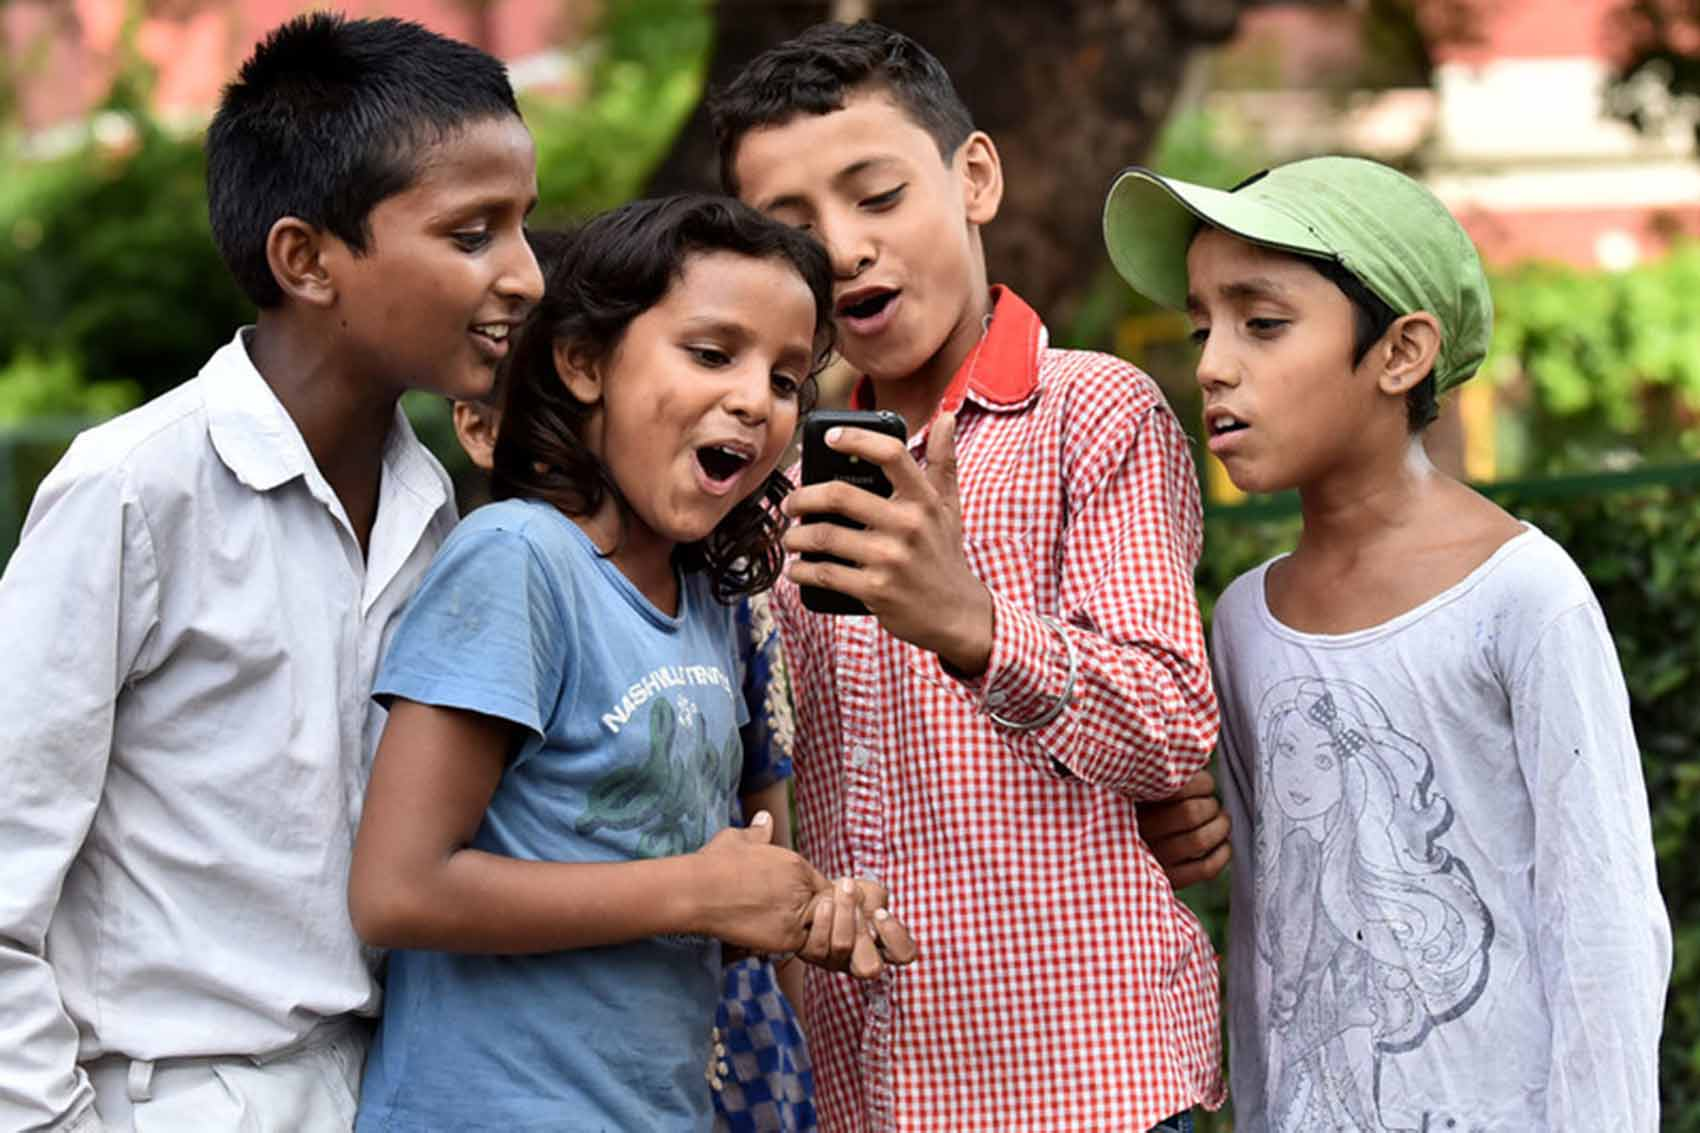 The impact of digital media on children today in India